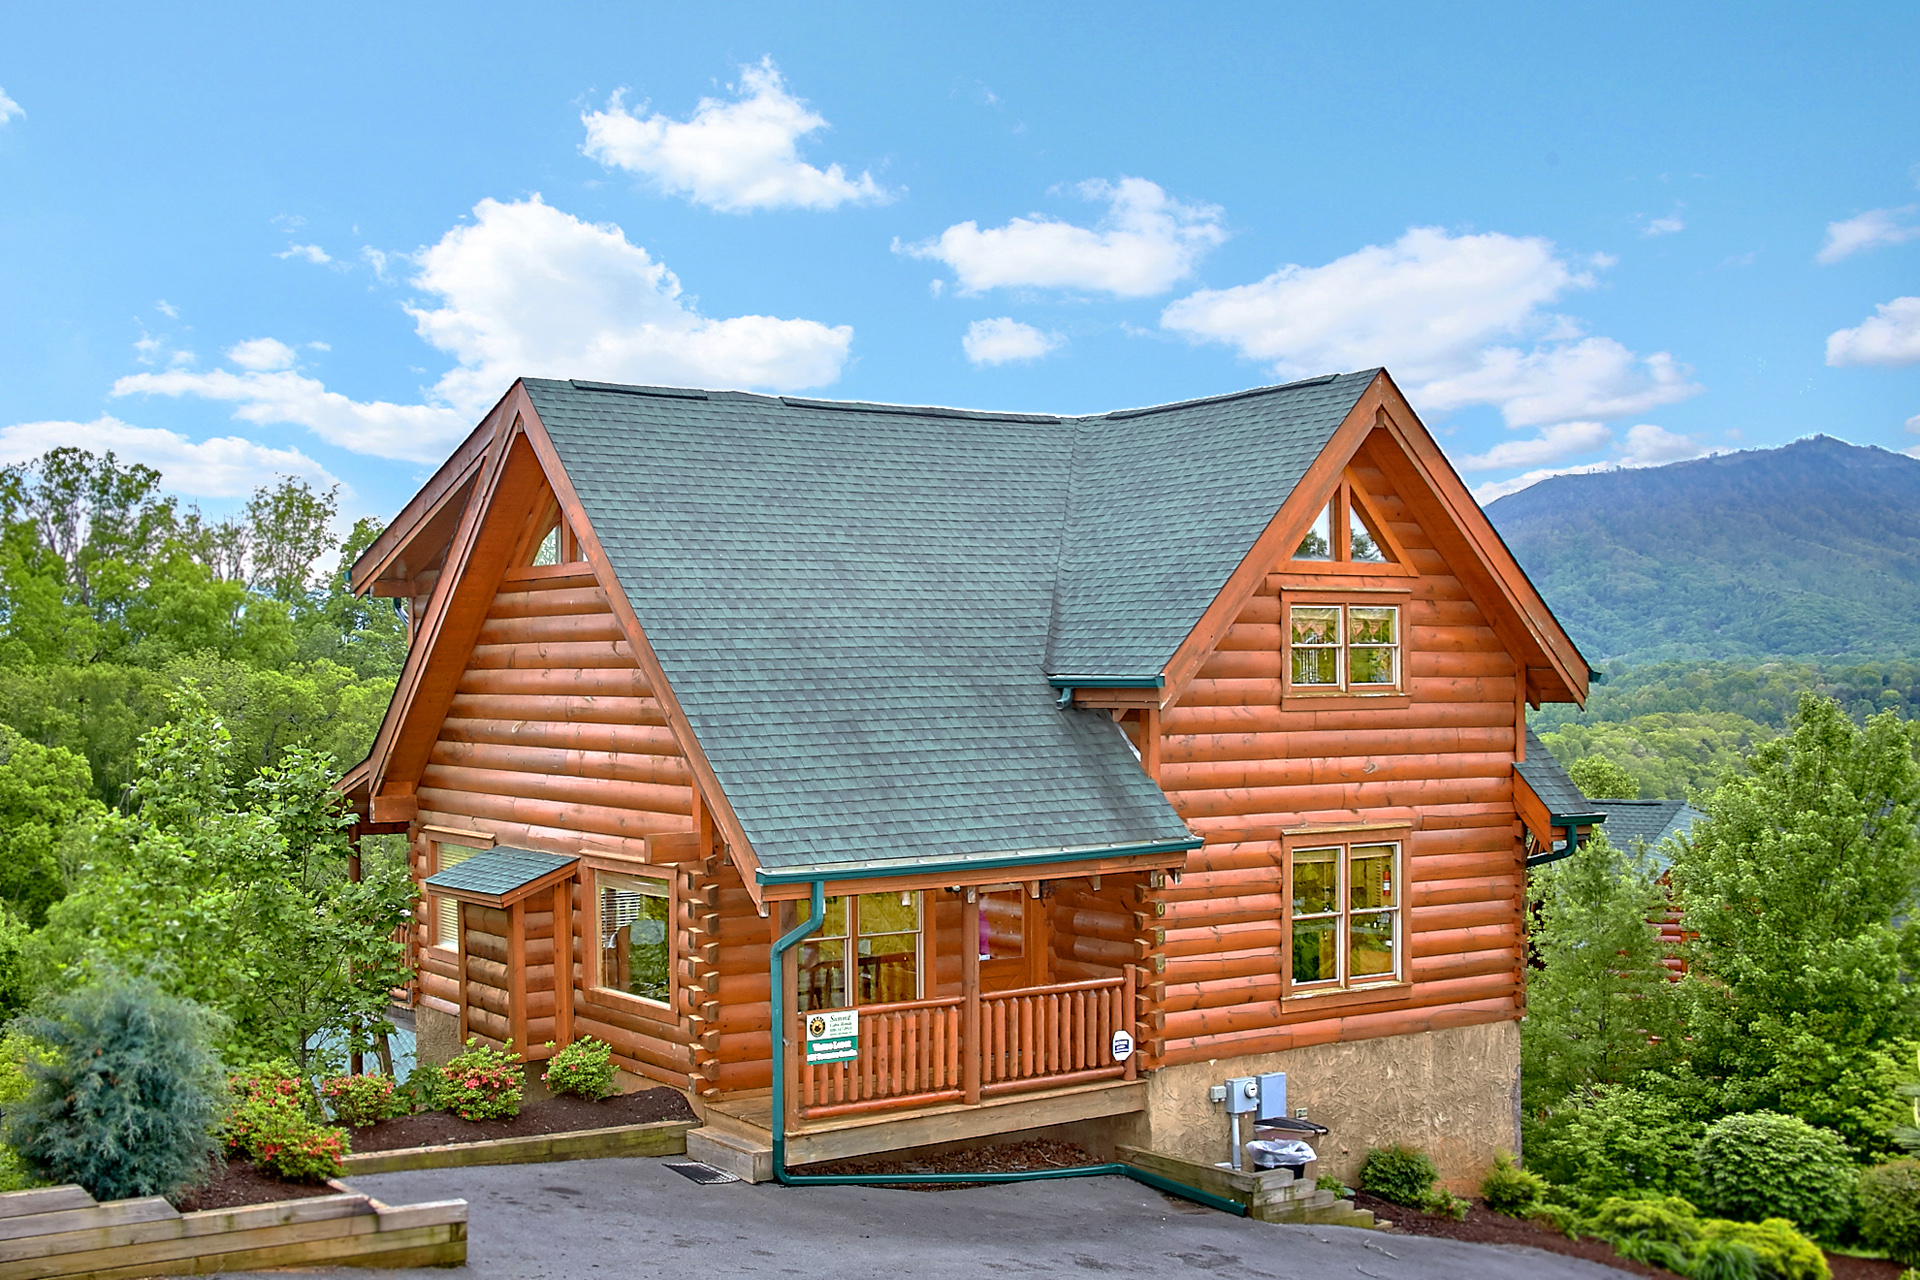 Log Homes And Cabins For Sale in Pigeon Forge TN